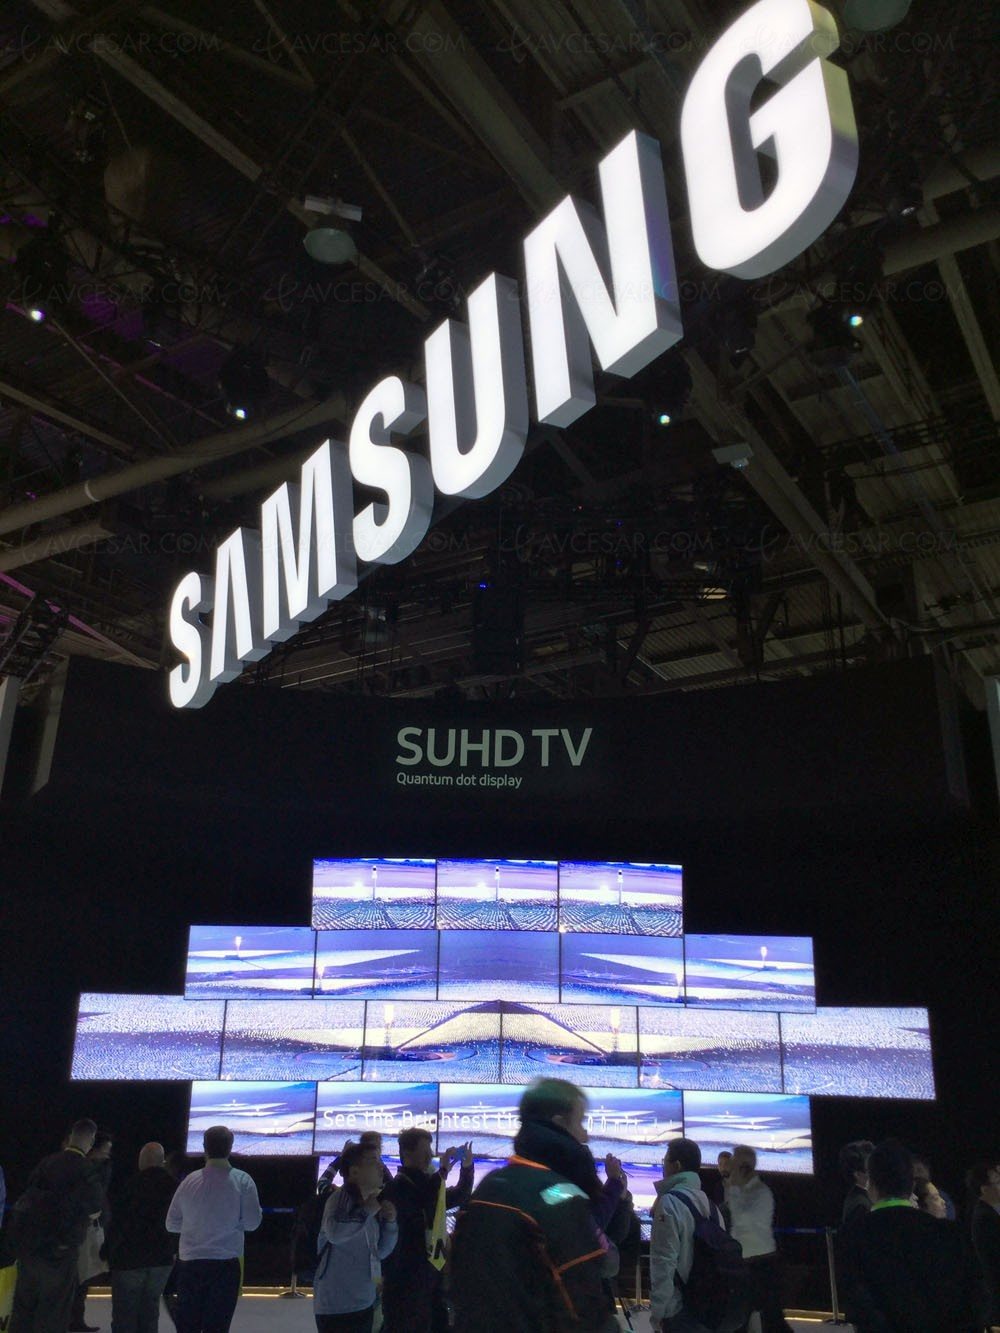 ces 16 tv led suhd samsung ks9500 mise jour pic lumineux. Black Bedroom Furniture Sets. Home Design Ideas